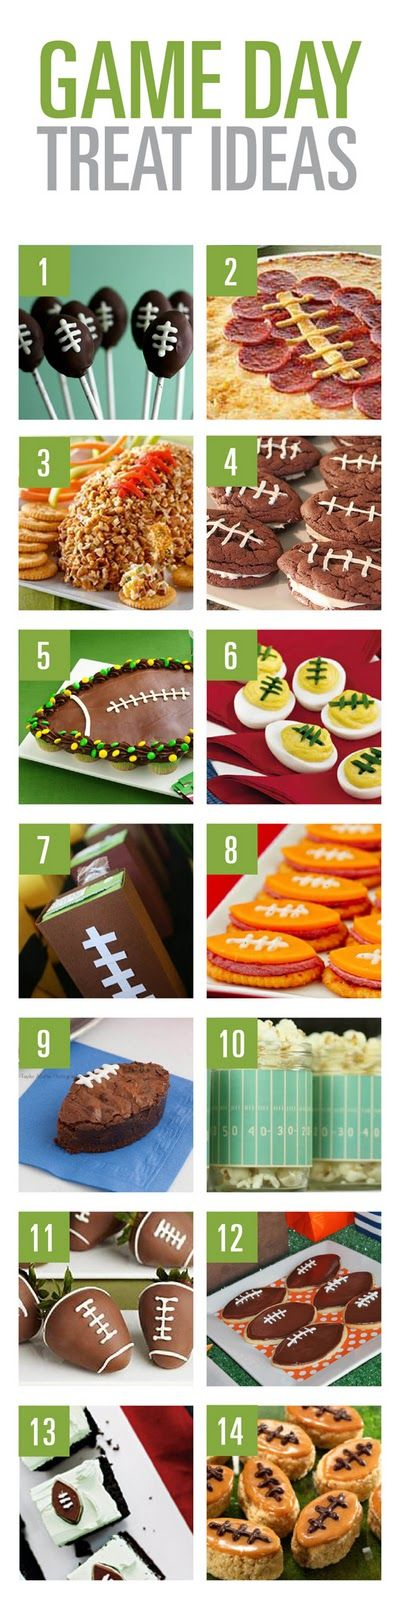 super bowl party ideas | Super Bowl party ideas & football party